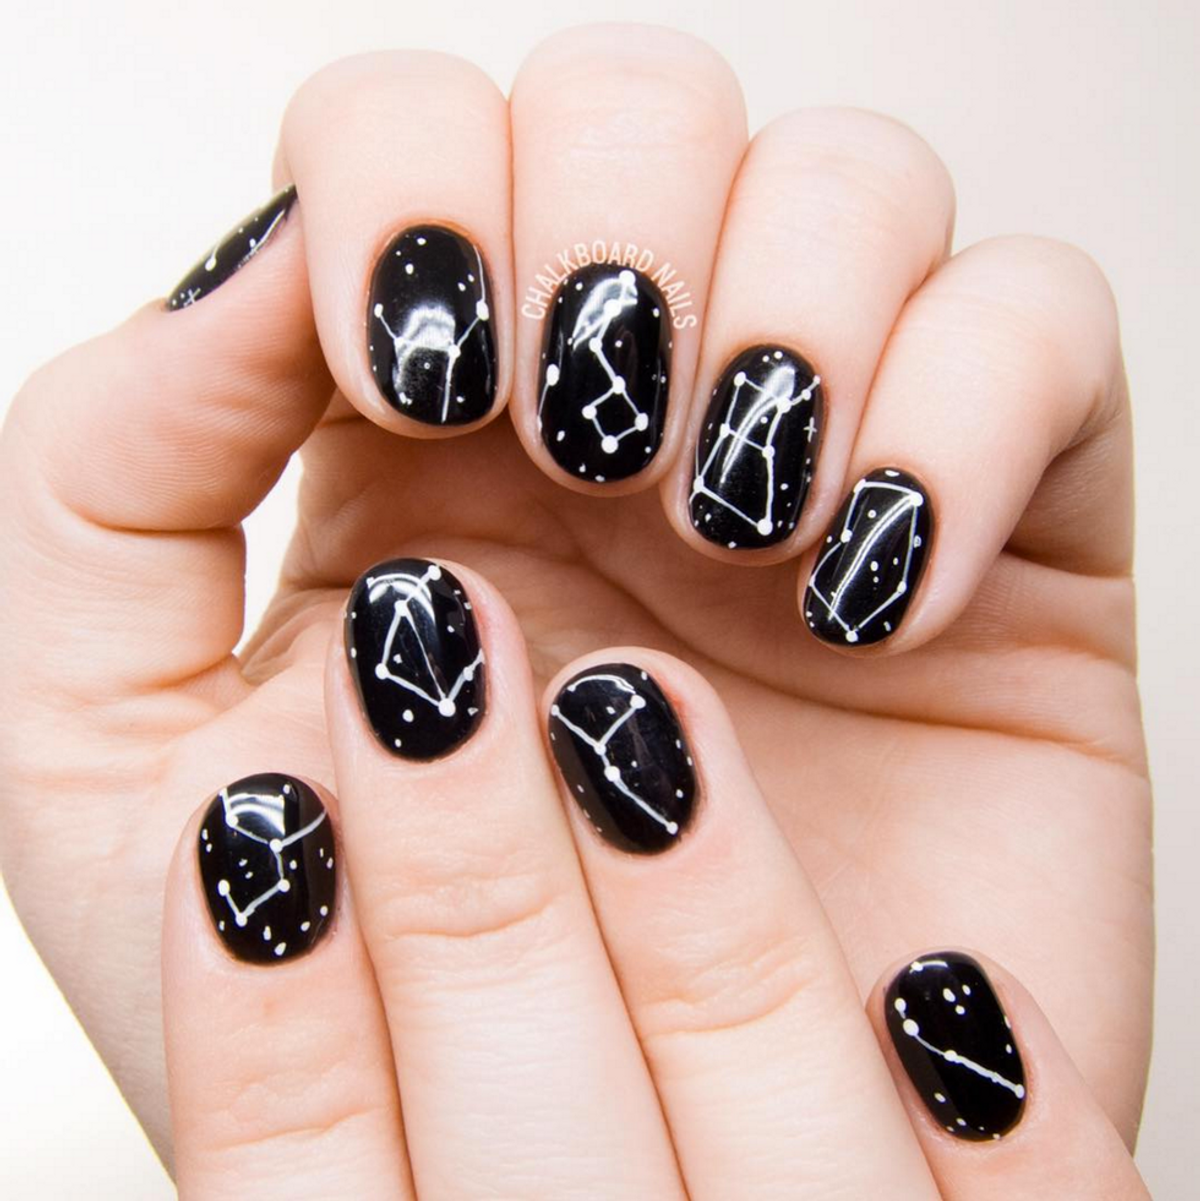 10 Nail Art Instagram Profiles That Will Make You Never Want To Do Your Own Nails Again